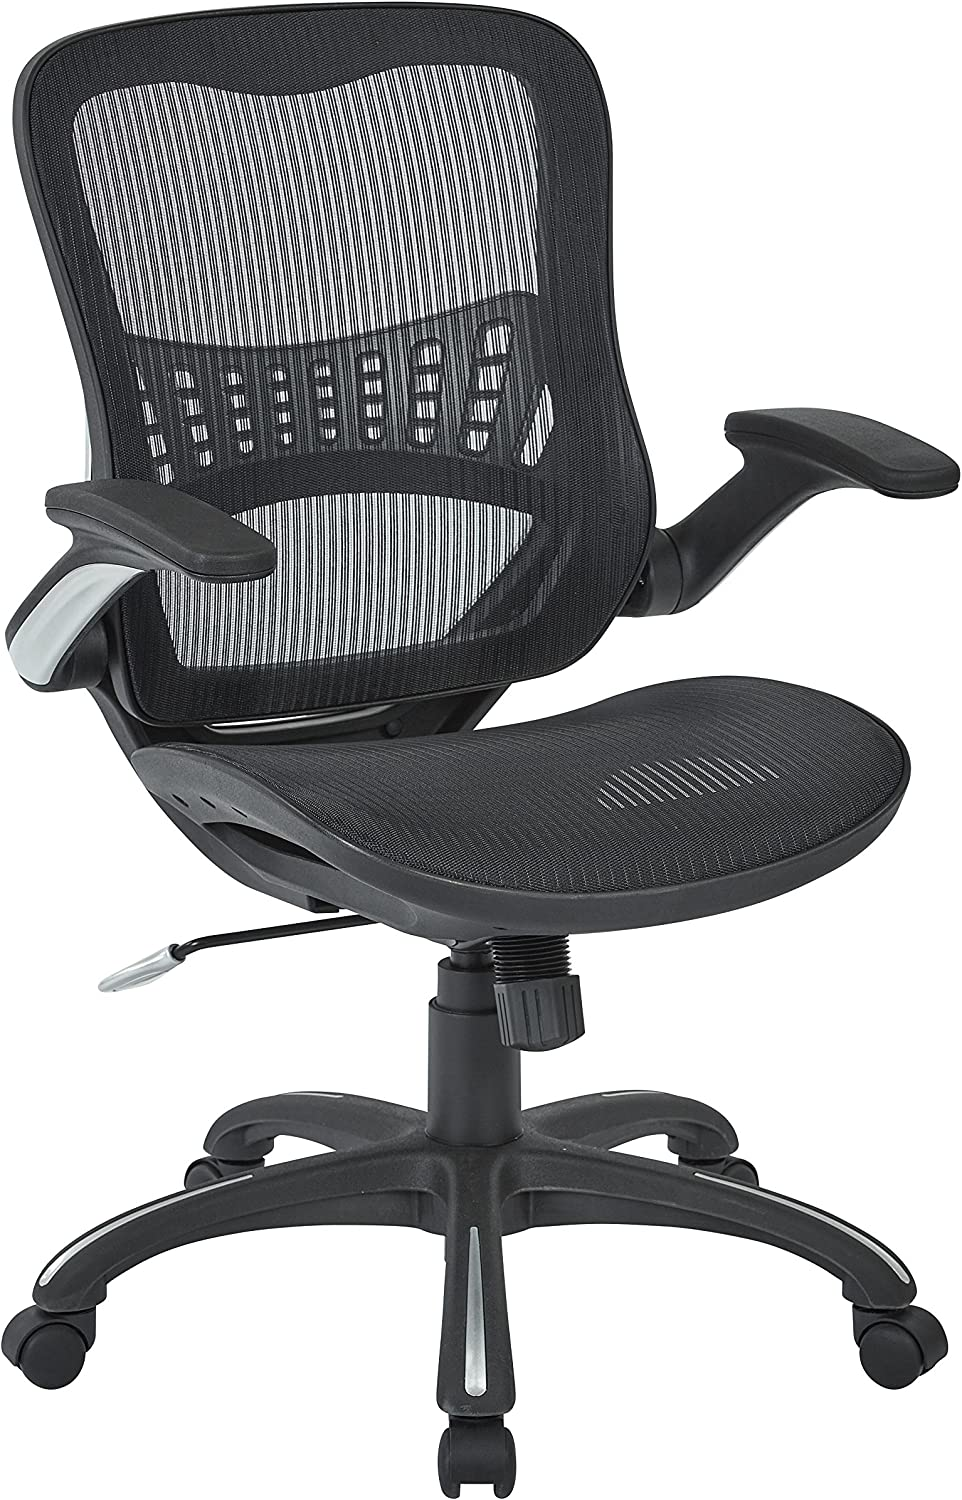 Office Star Managers Chair with Mesh Seat and Back, Black